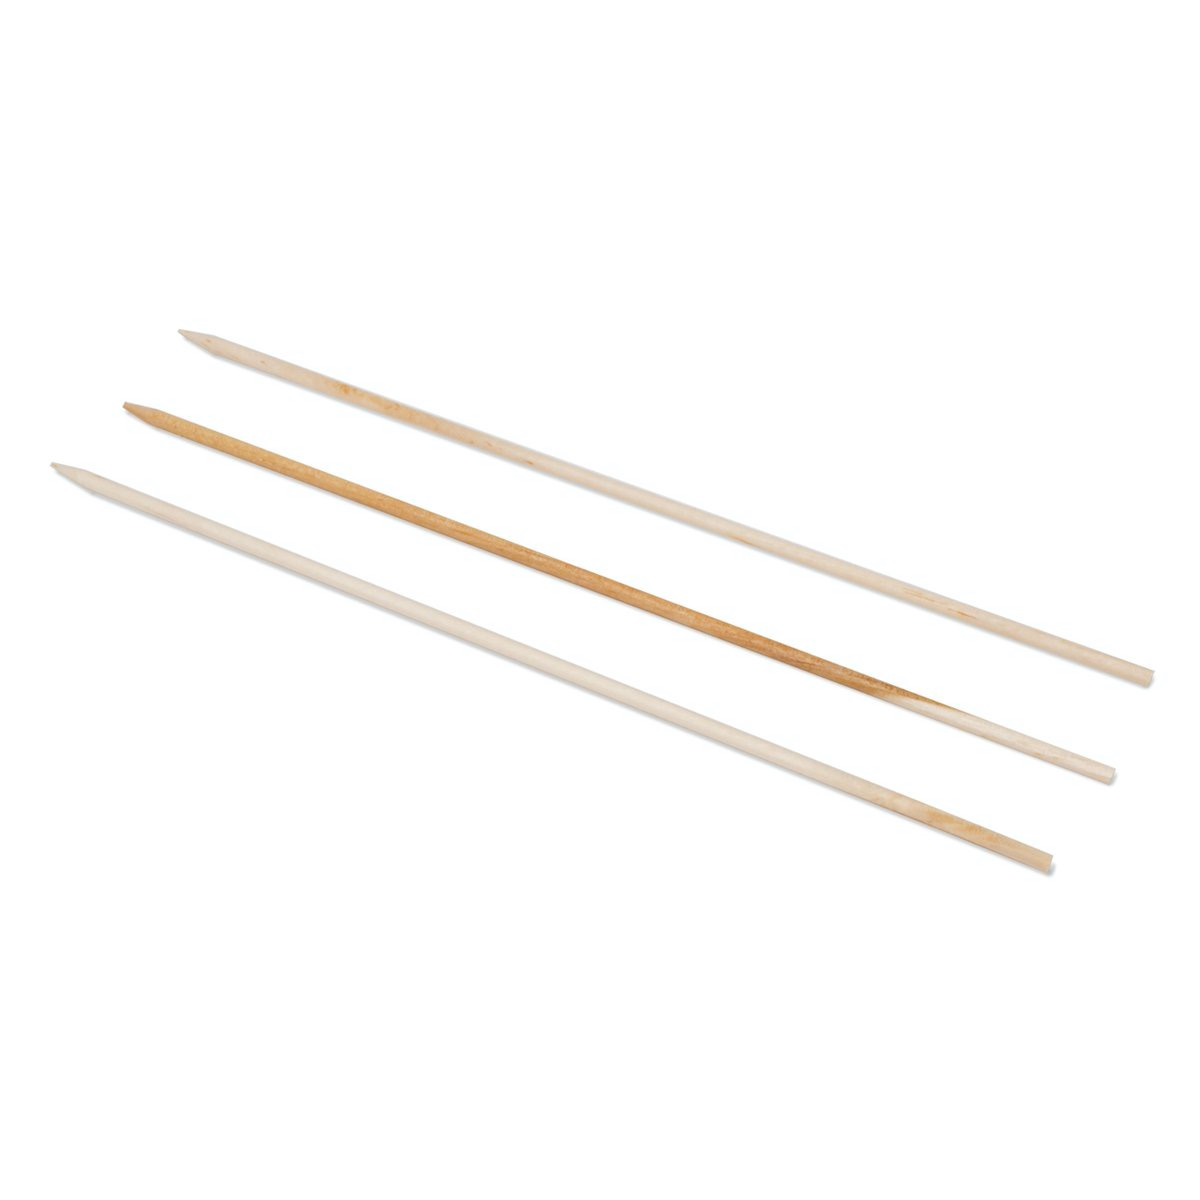 10 BAMBOO SKEWER 1000 CT